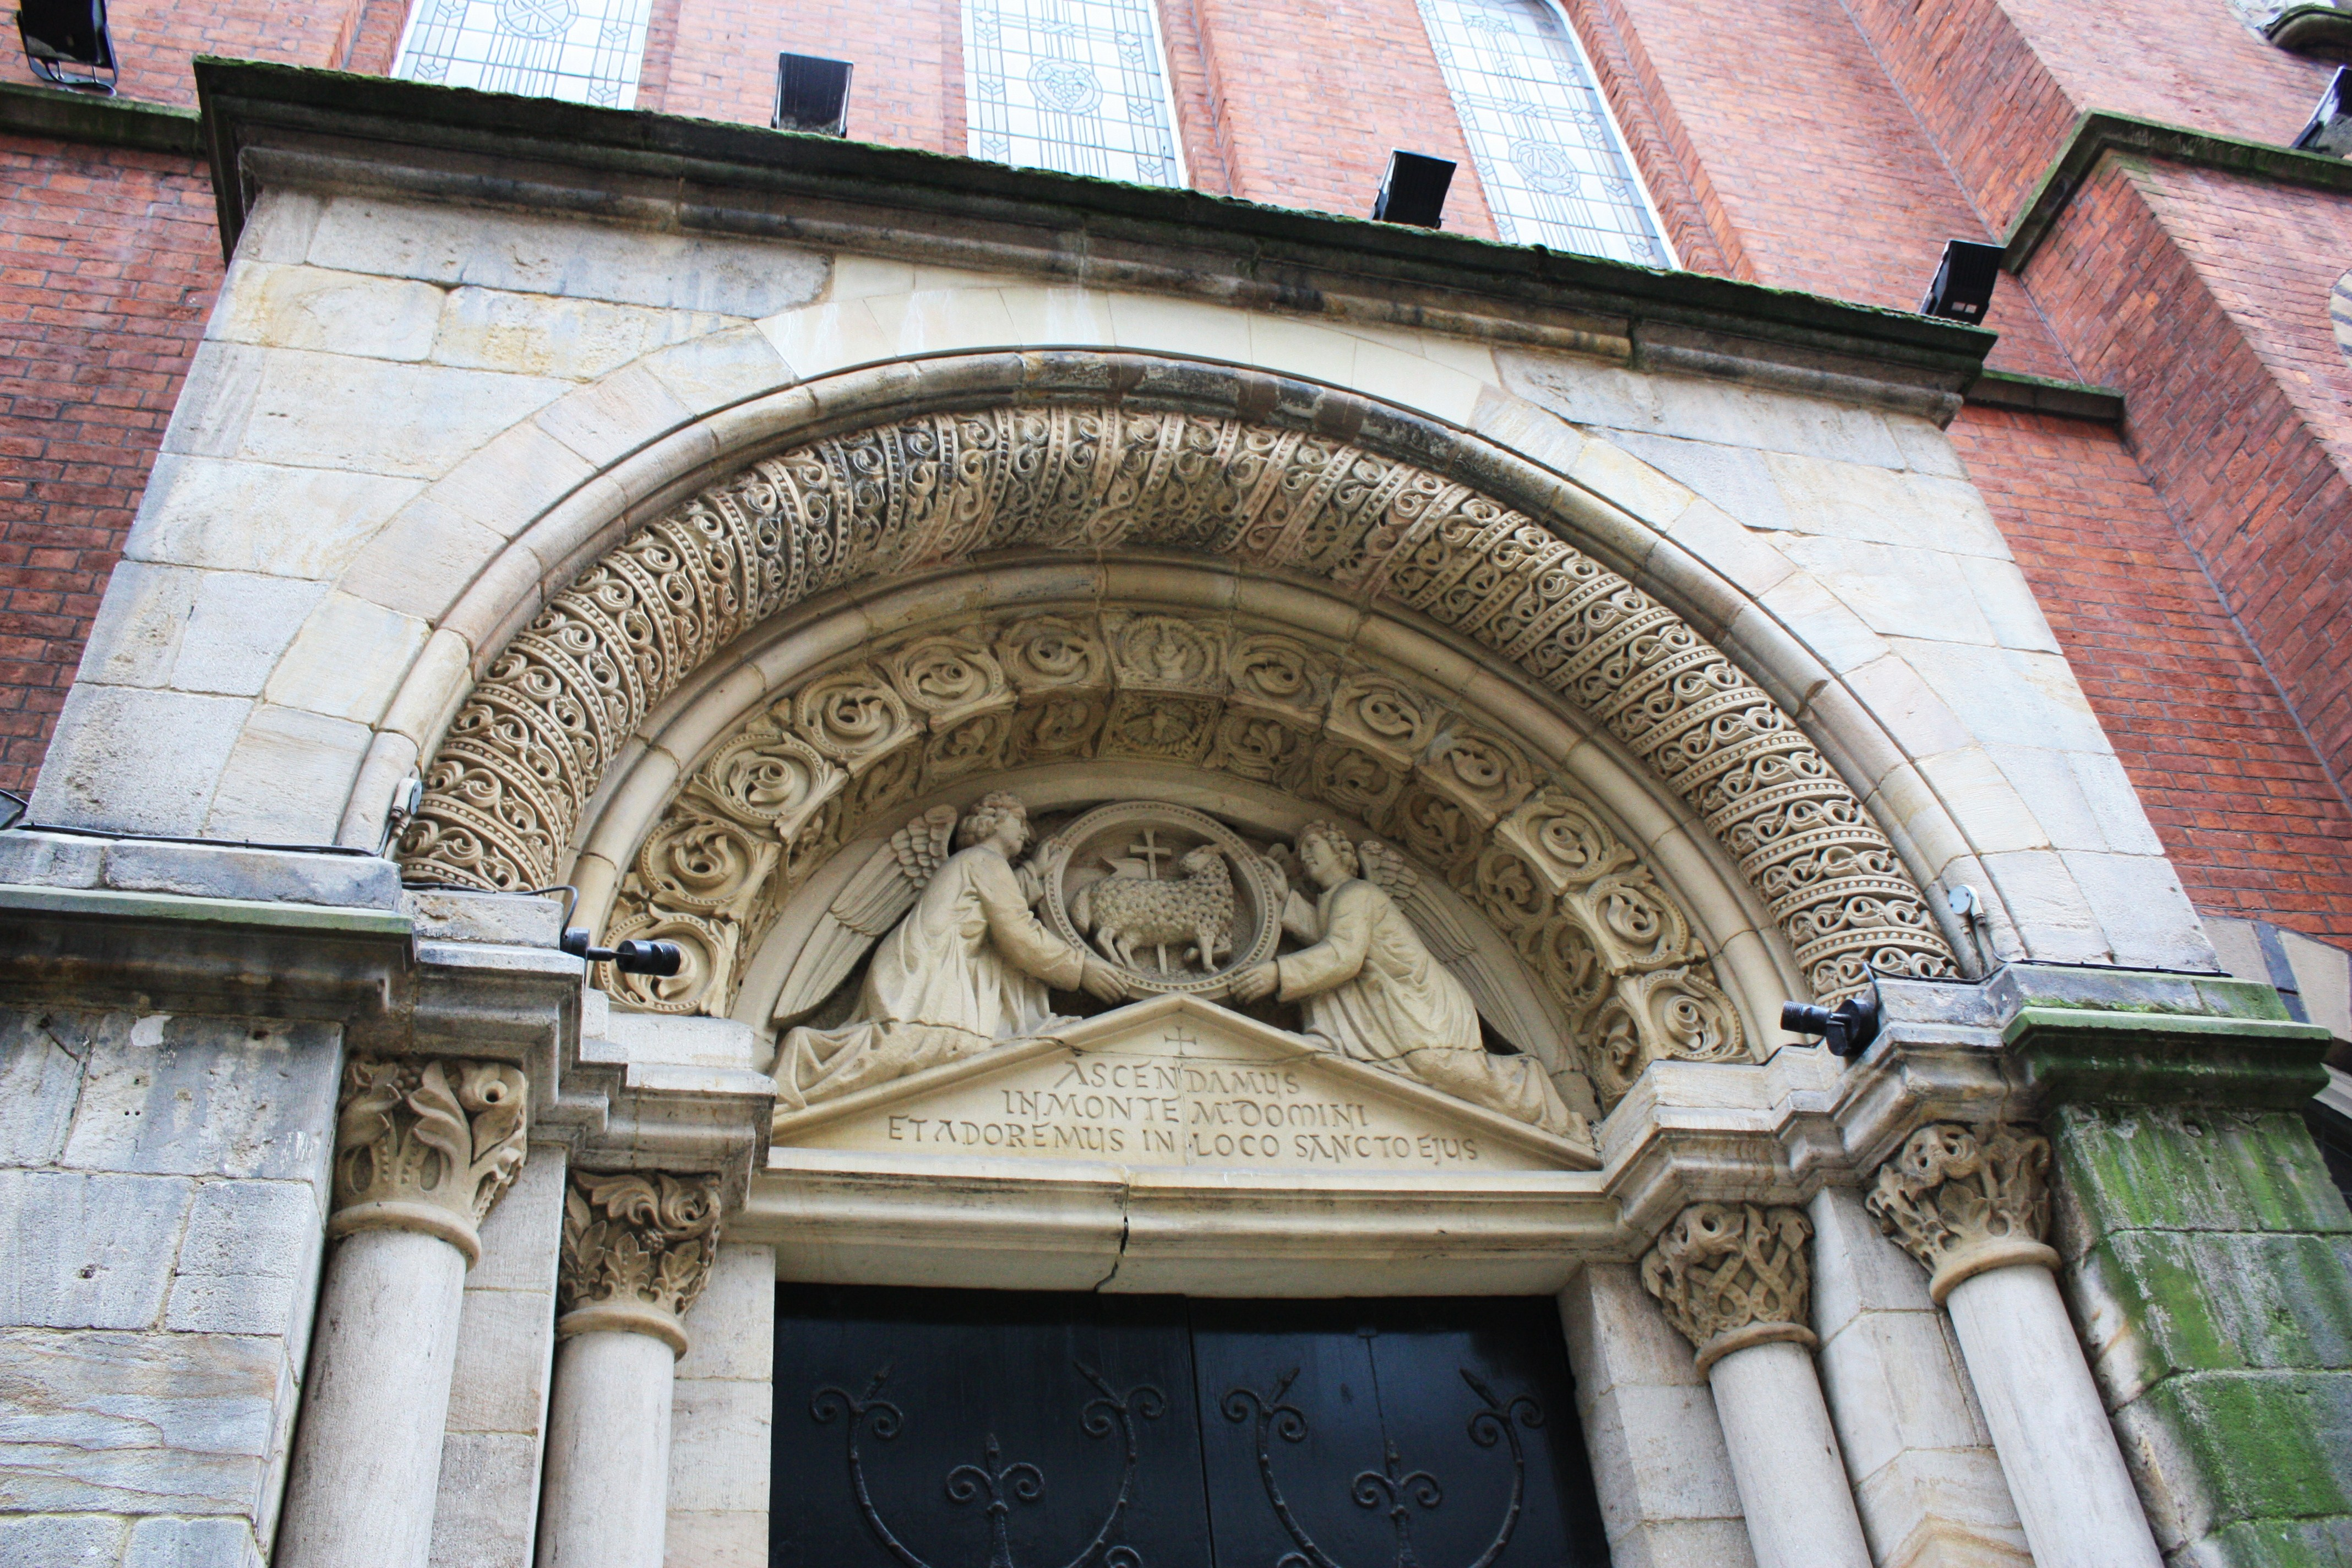 22. Entrance to St. Mary's Roman Catholic Church (I). Mulberry Street, Manchester